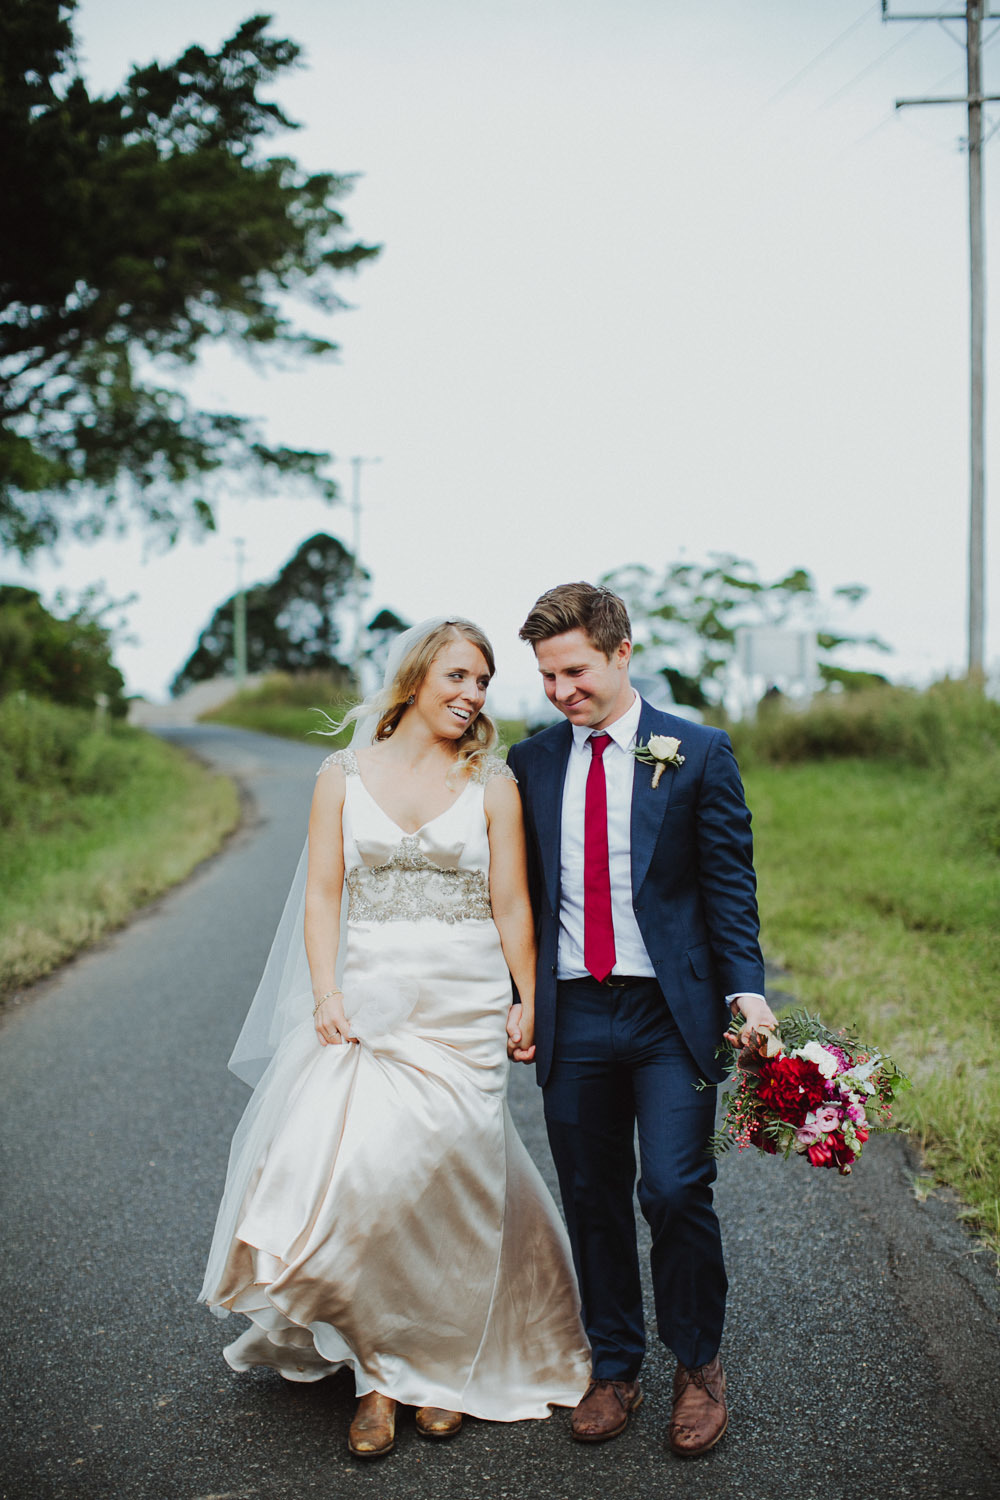 justin_aaron_byron_bay_eureka_wedding_photographer-47.jpg